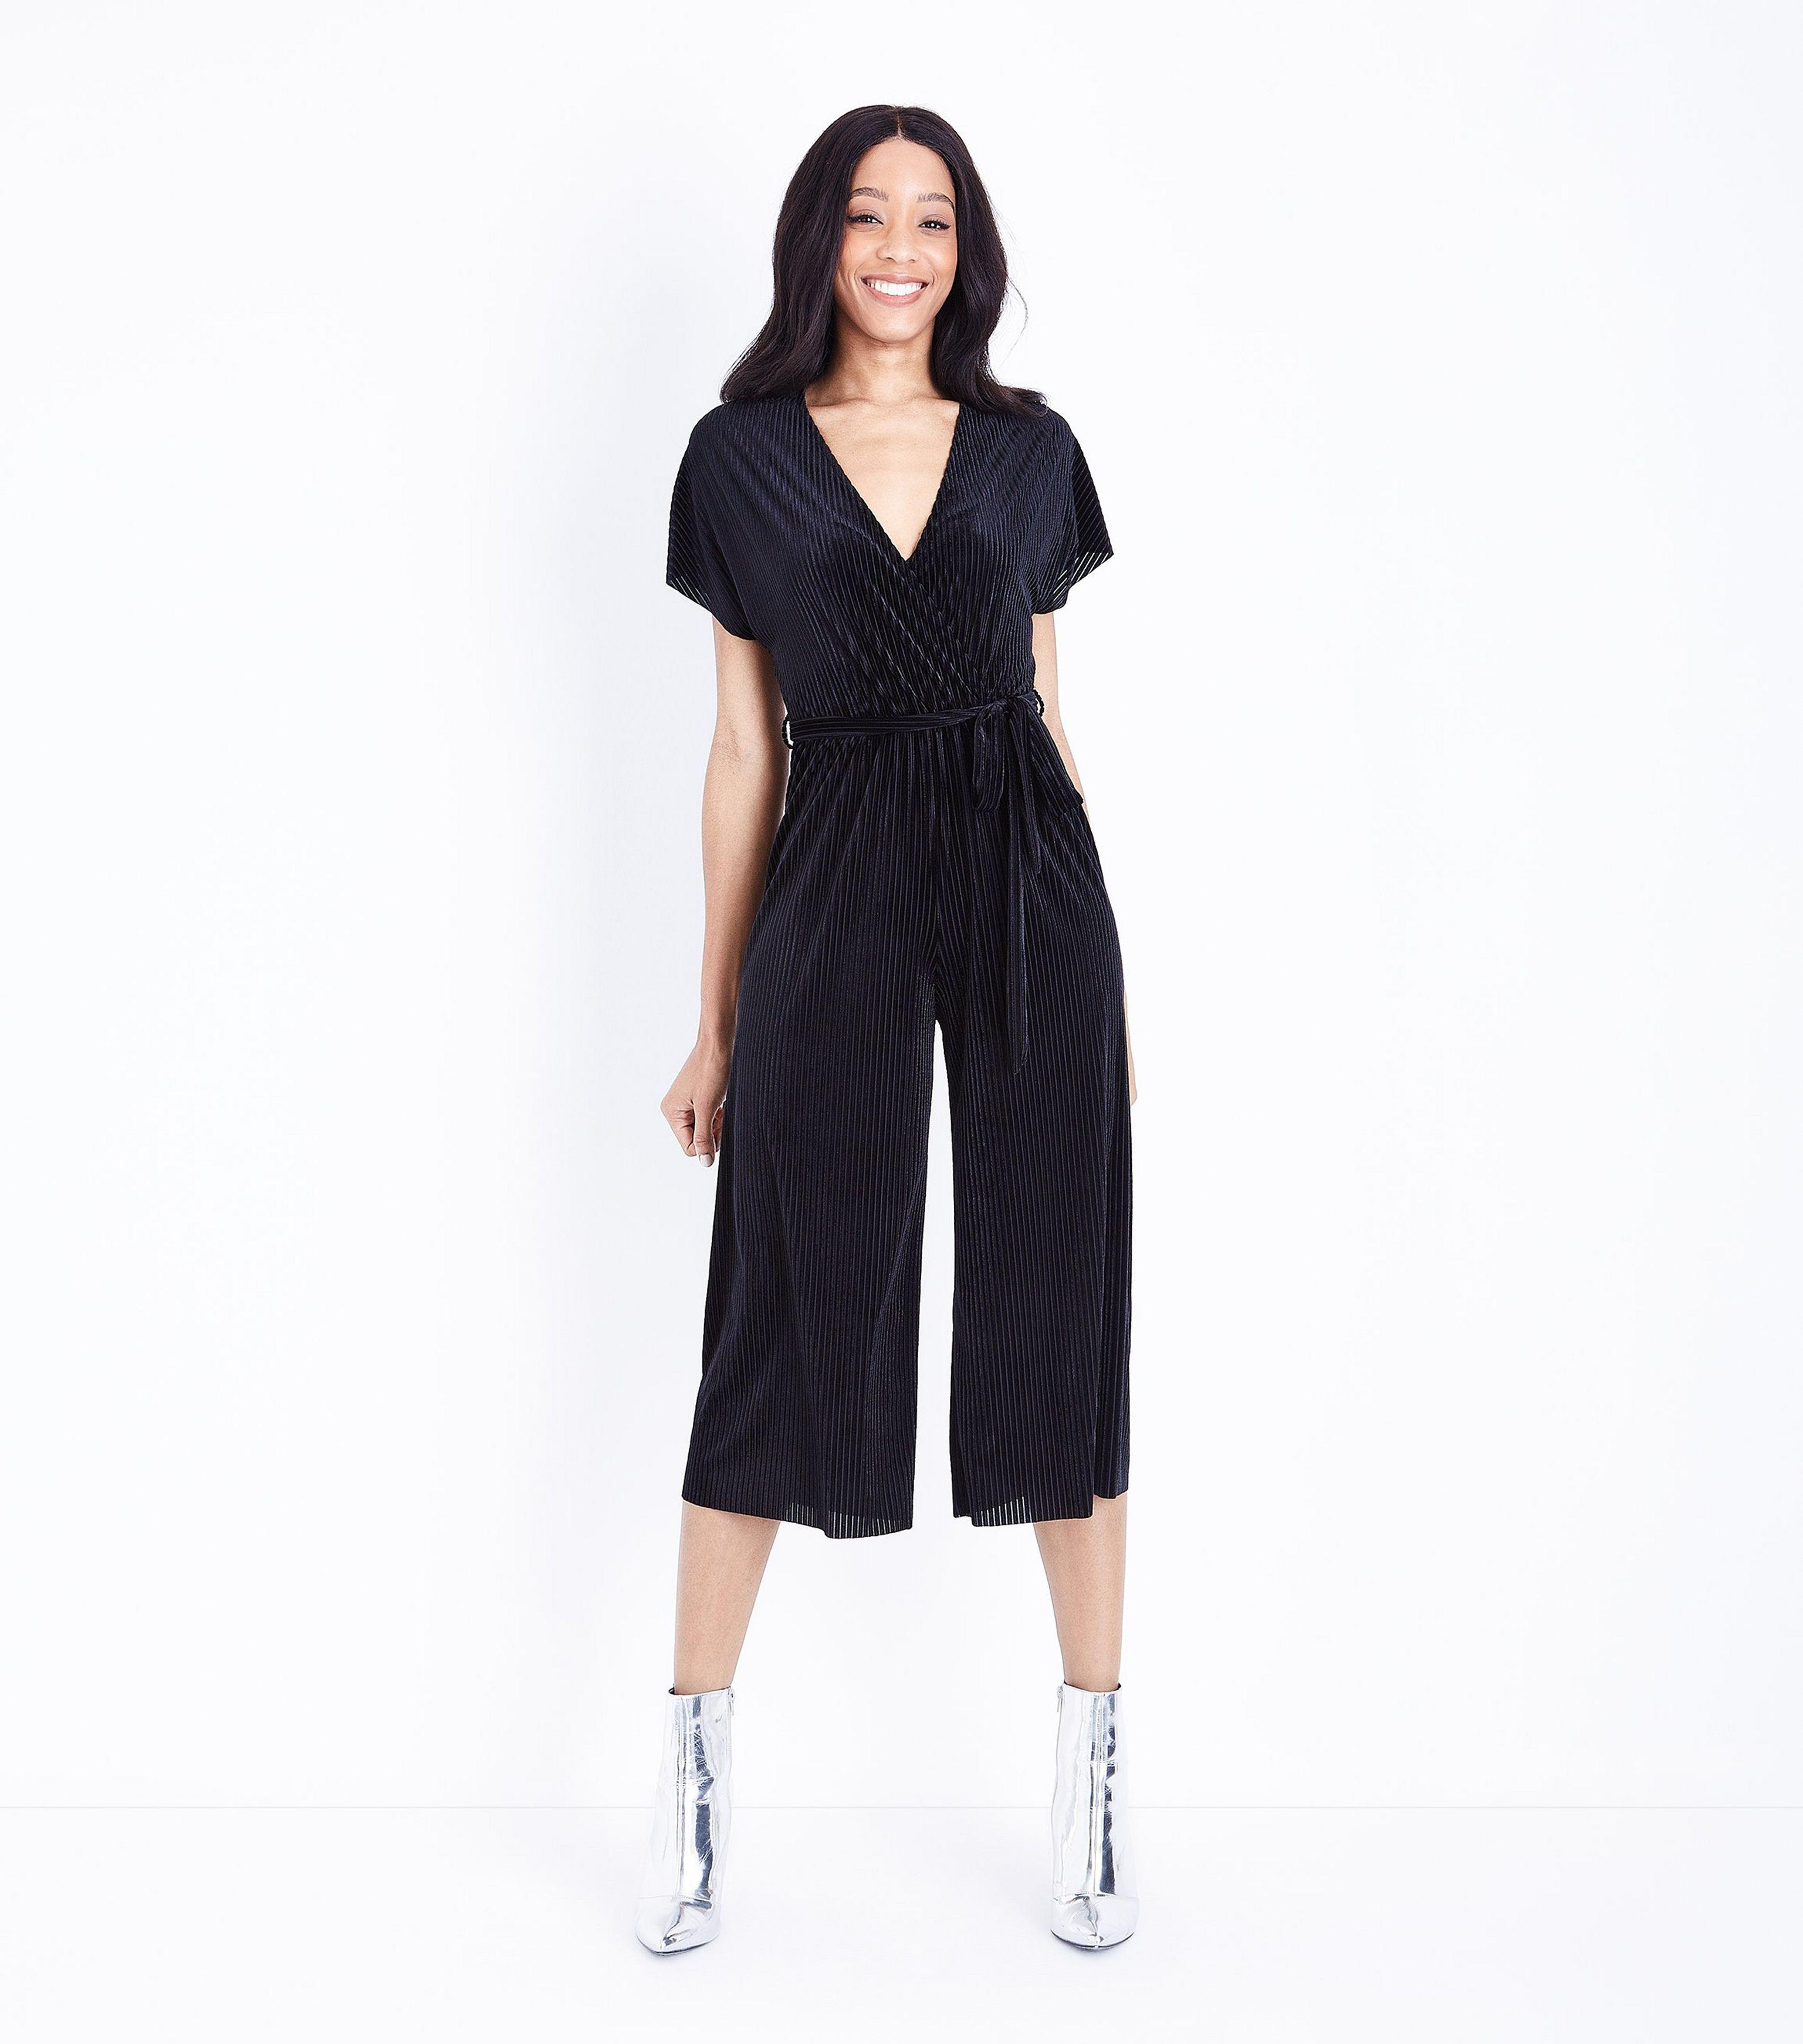 46495b8a9d4 New Look Black Ribbed Velvet Wrap Front Jumpsuit in Black - Lyst